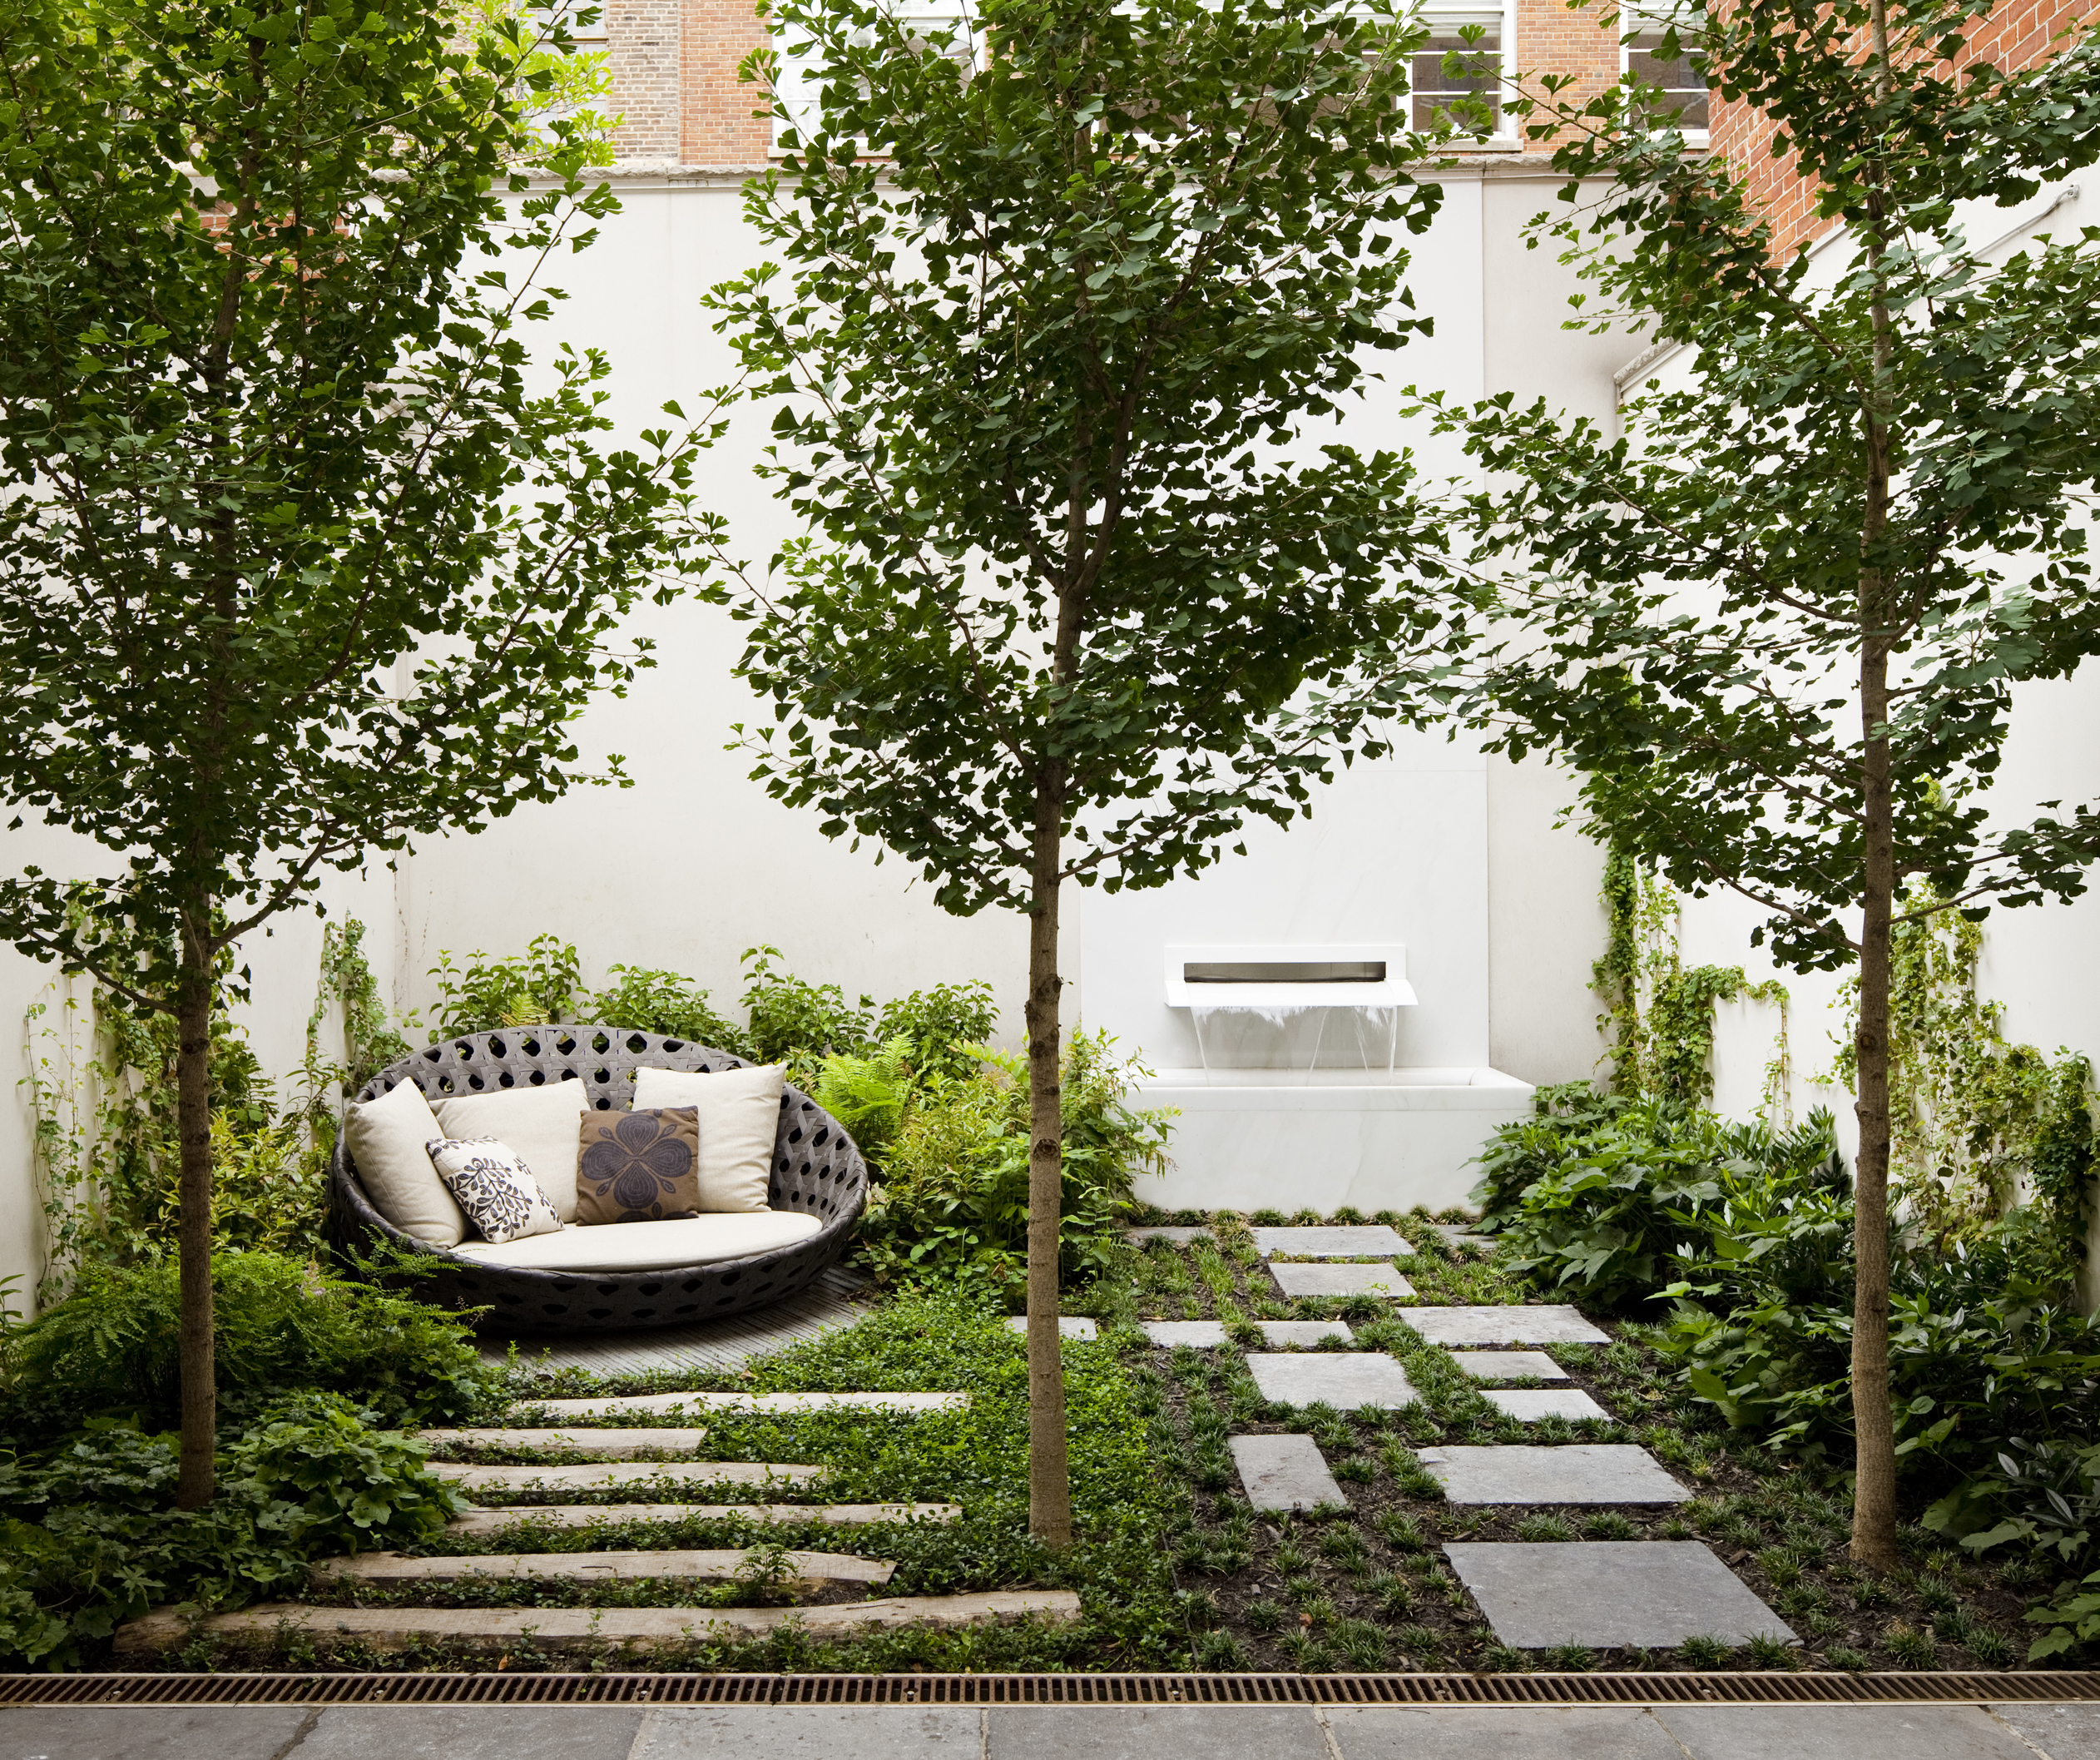 Asla 2011 professional awards carnegie hill house Architecture de jardin